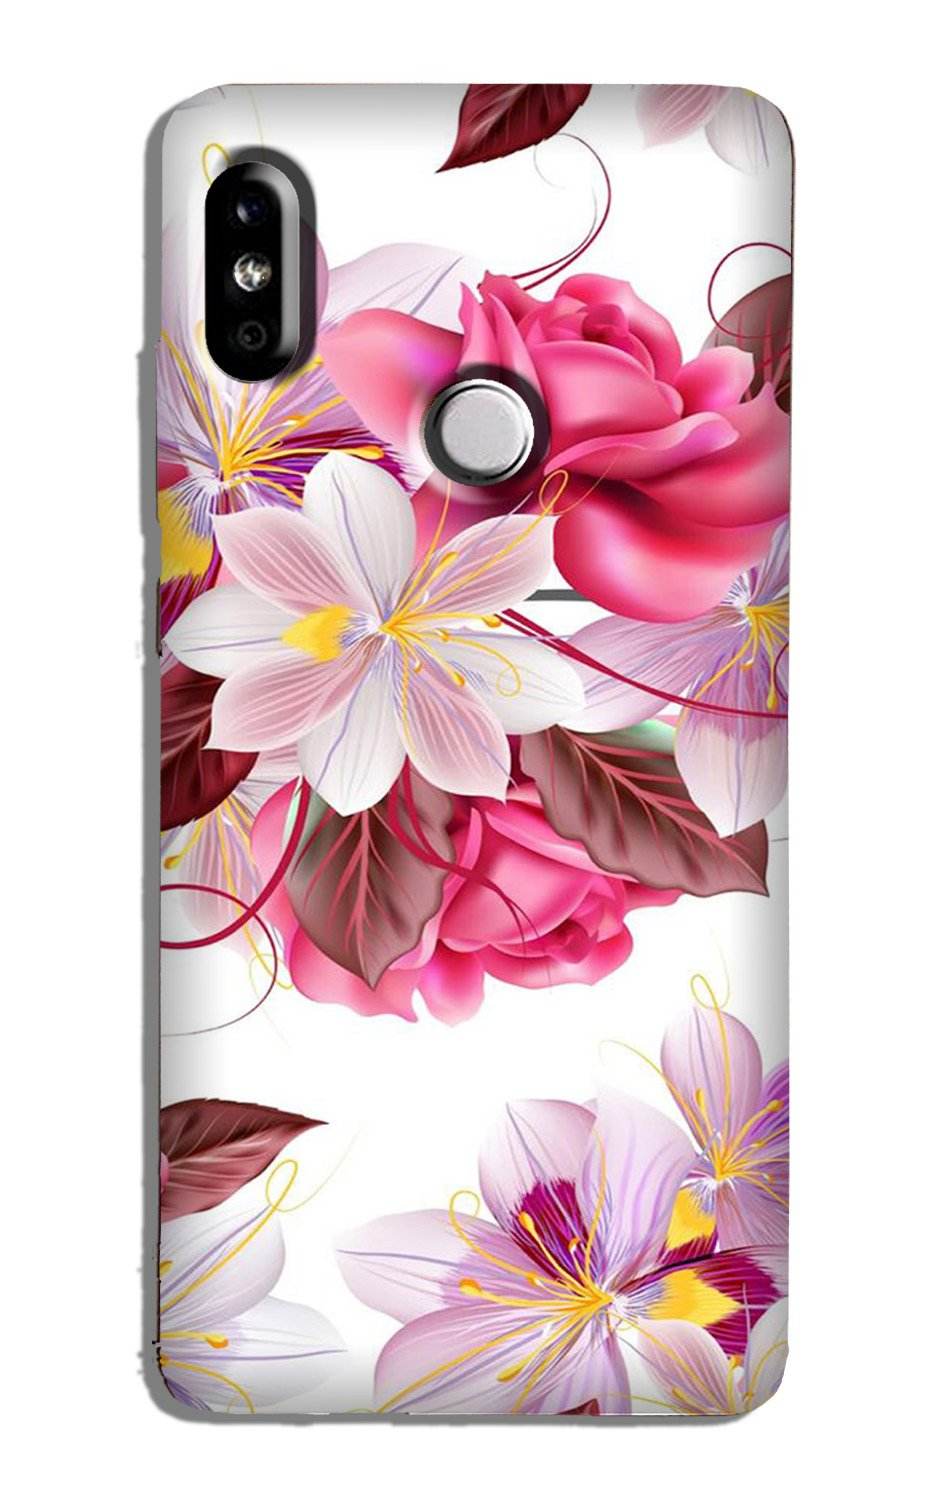 Beautiful flowers Case for Redmi Note 5 Pro